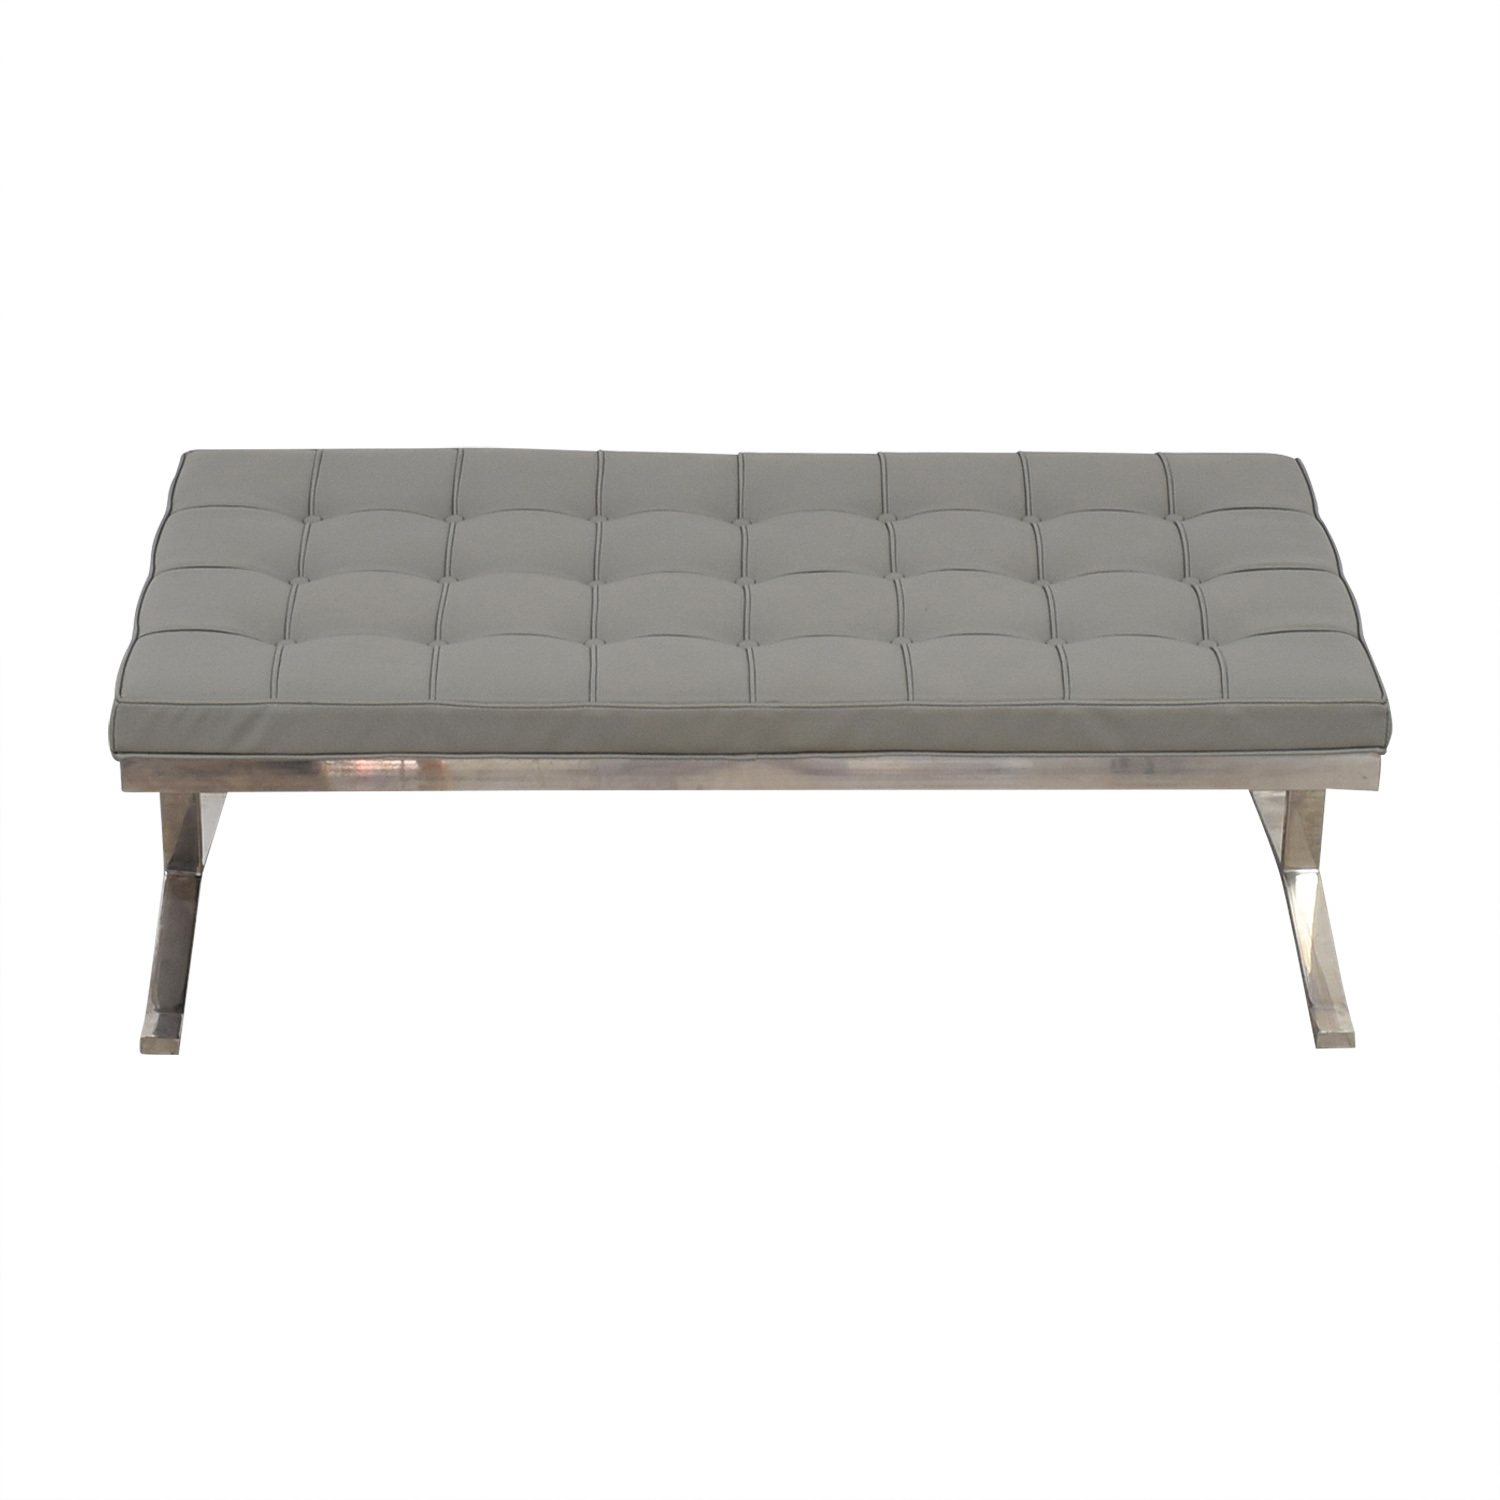 Tidaholm Grey Tufted Bench used